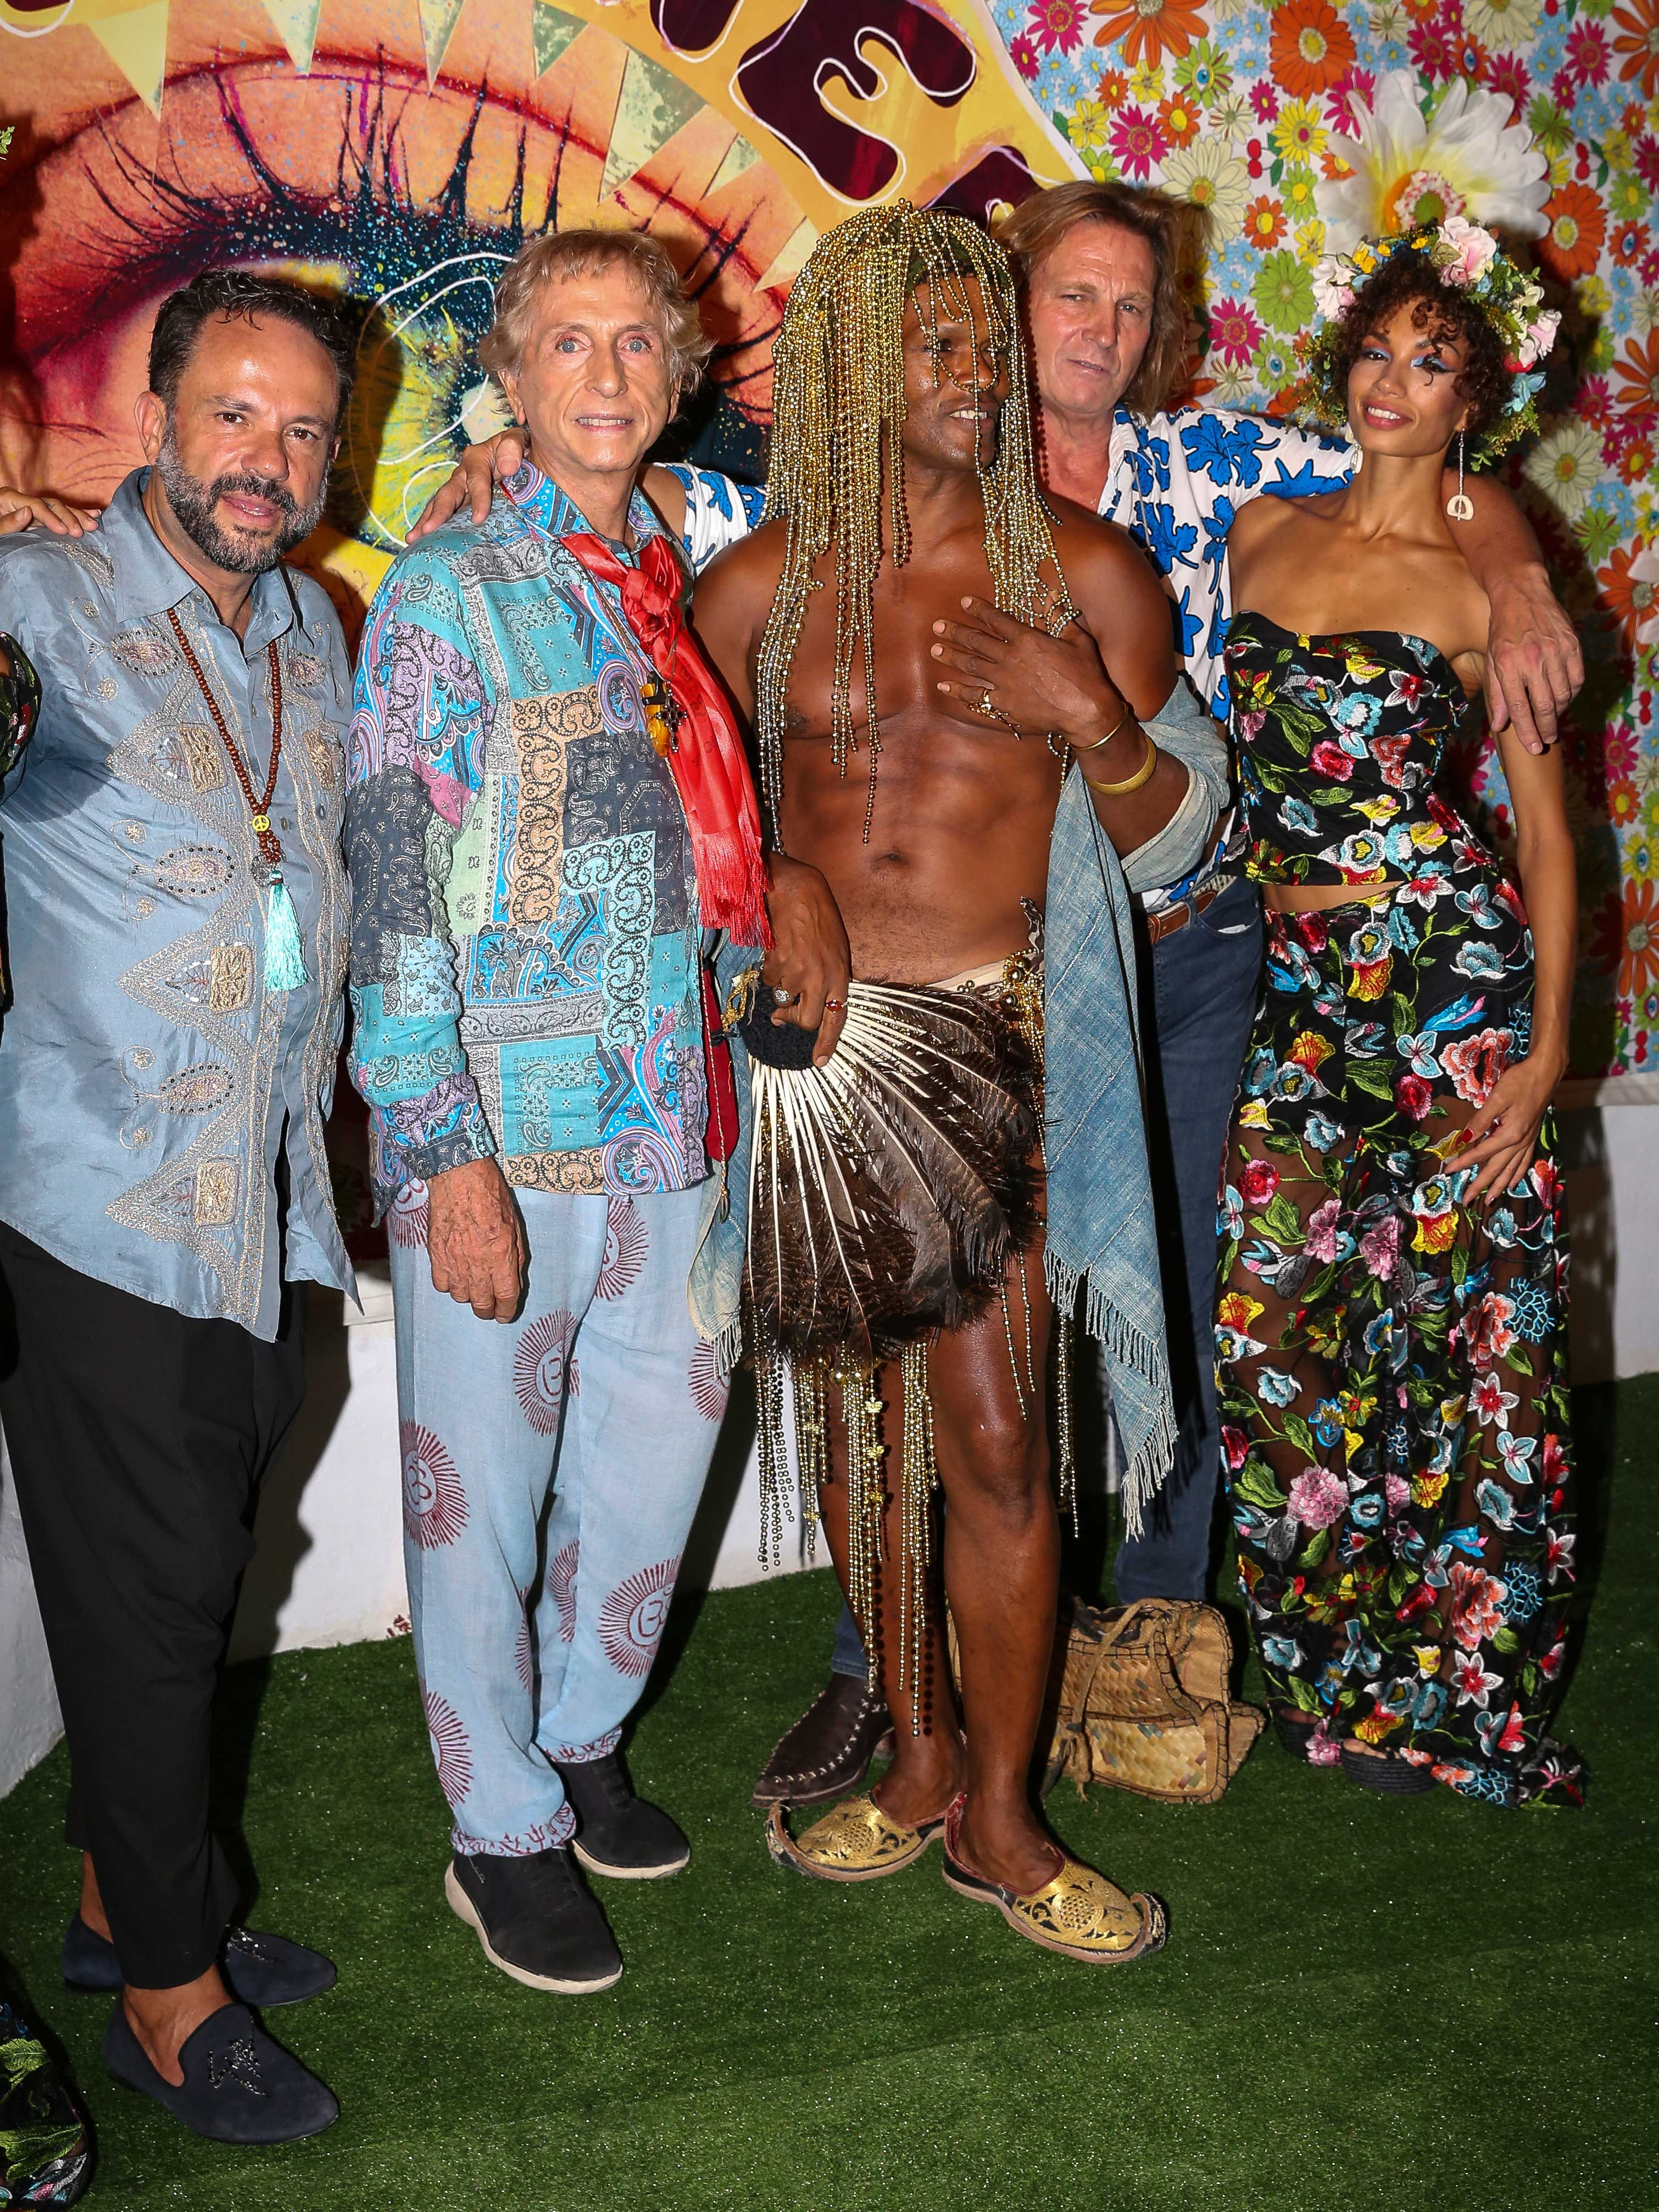 Fiesta Flower power Ibiza